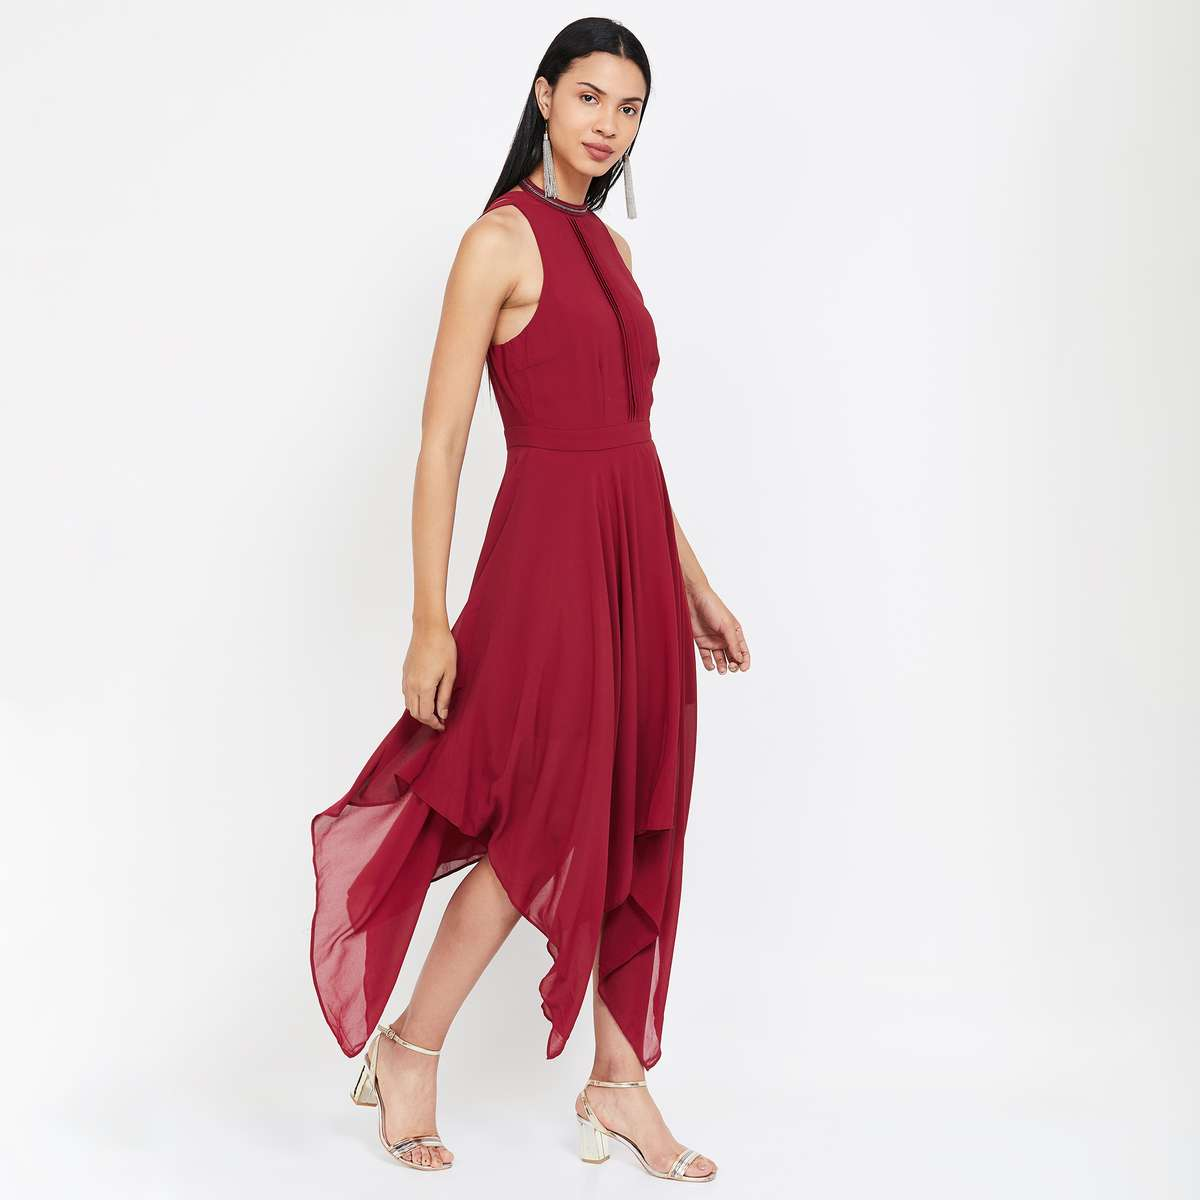 VERO MODA Solid Asymmetric Dress